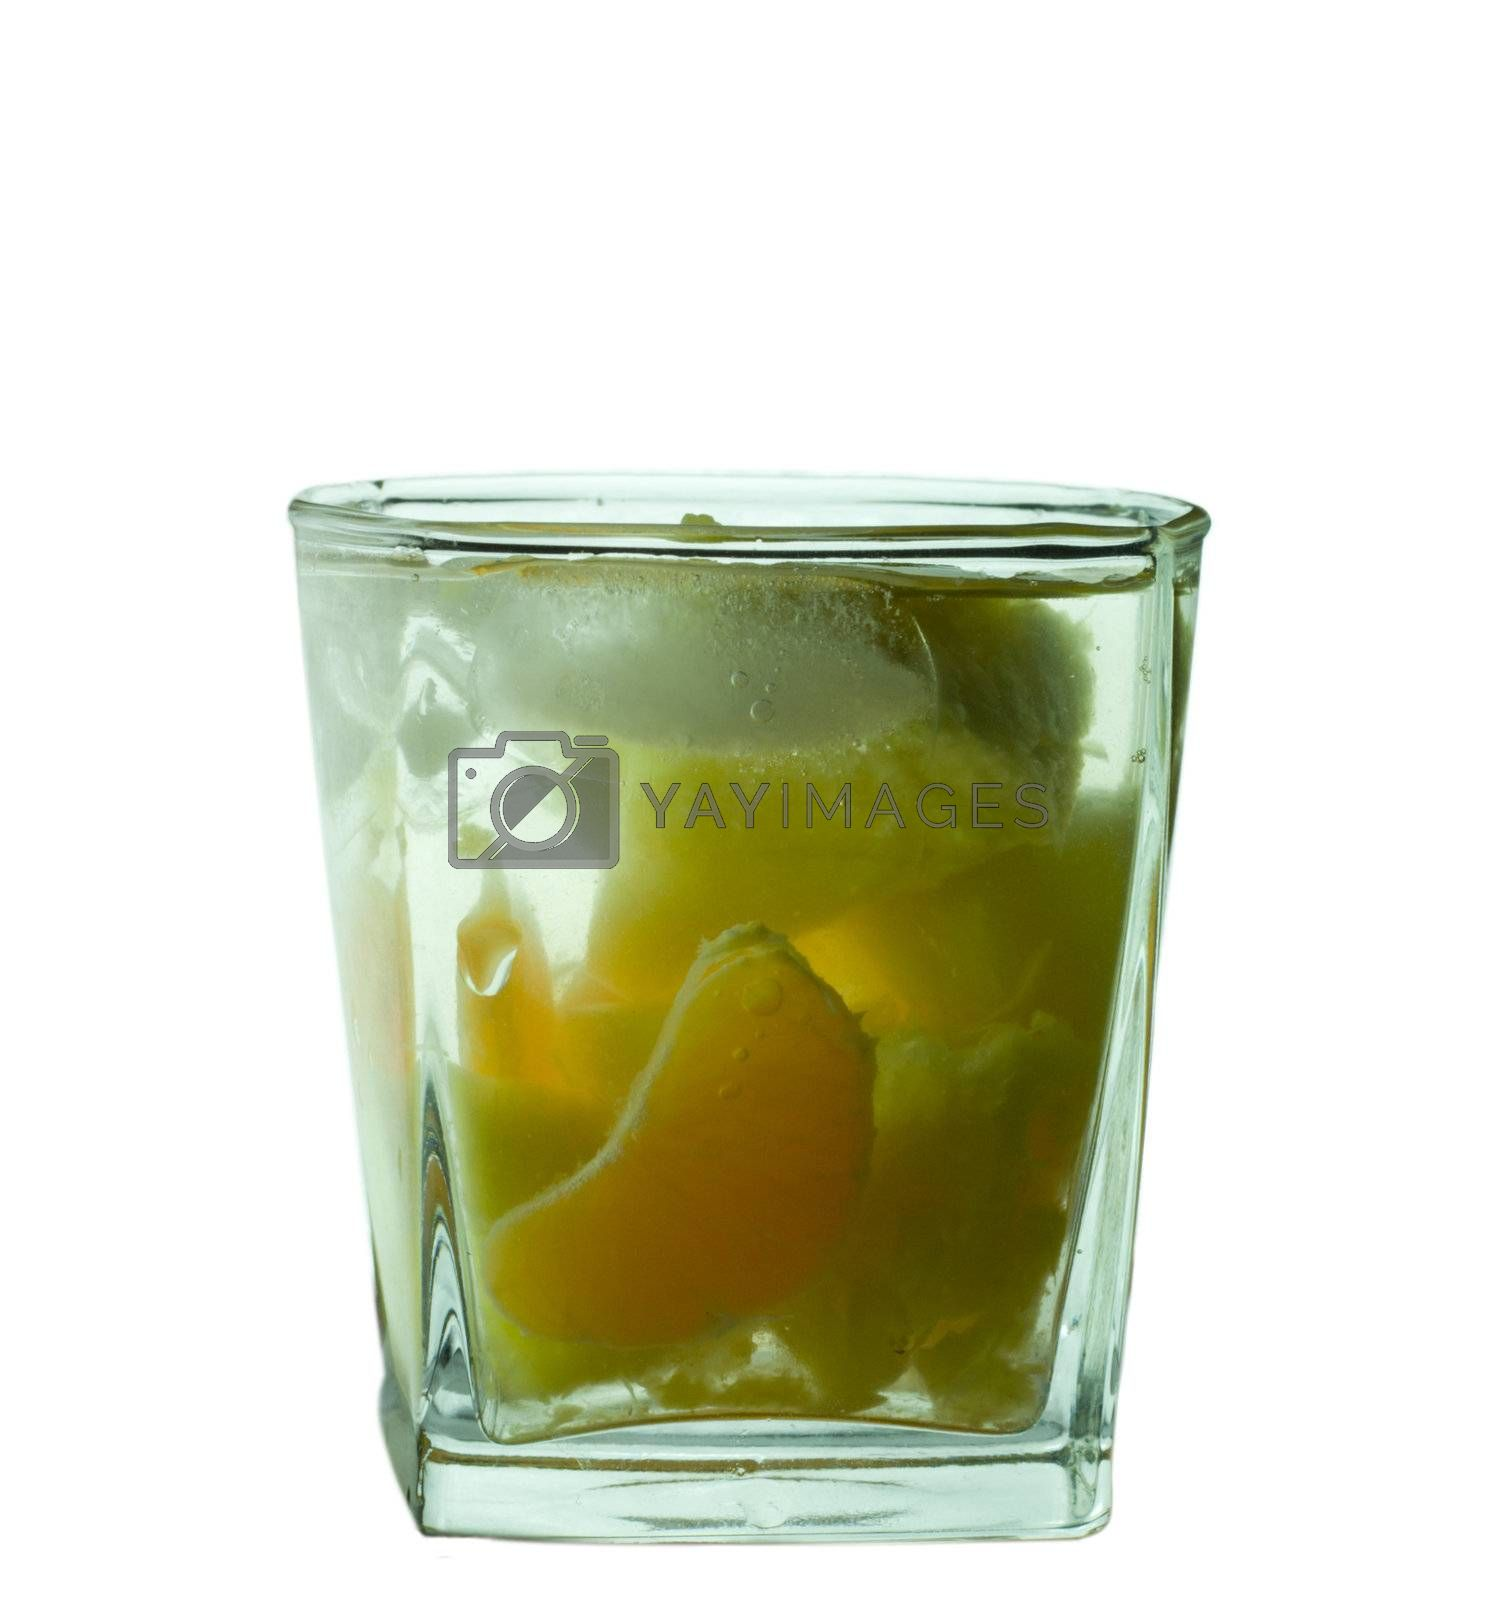 close-up glass with fruits cocktail, isolated on white